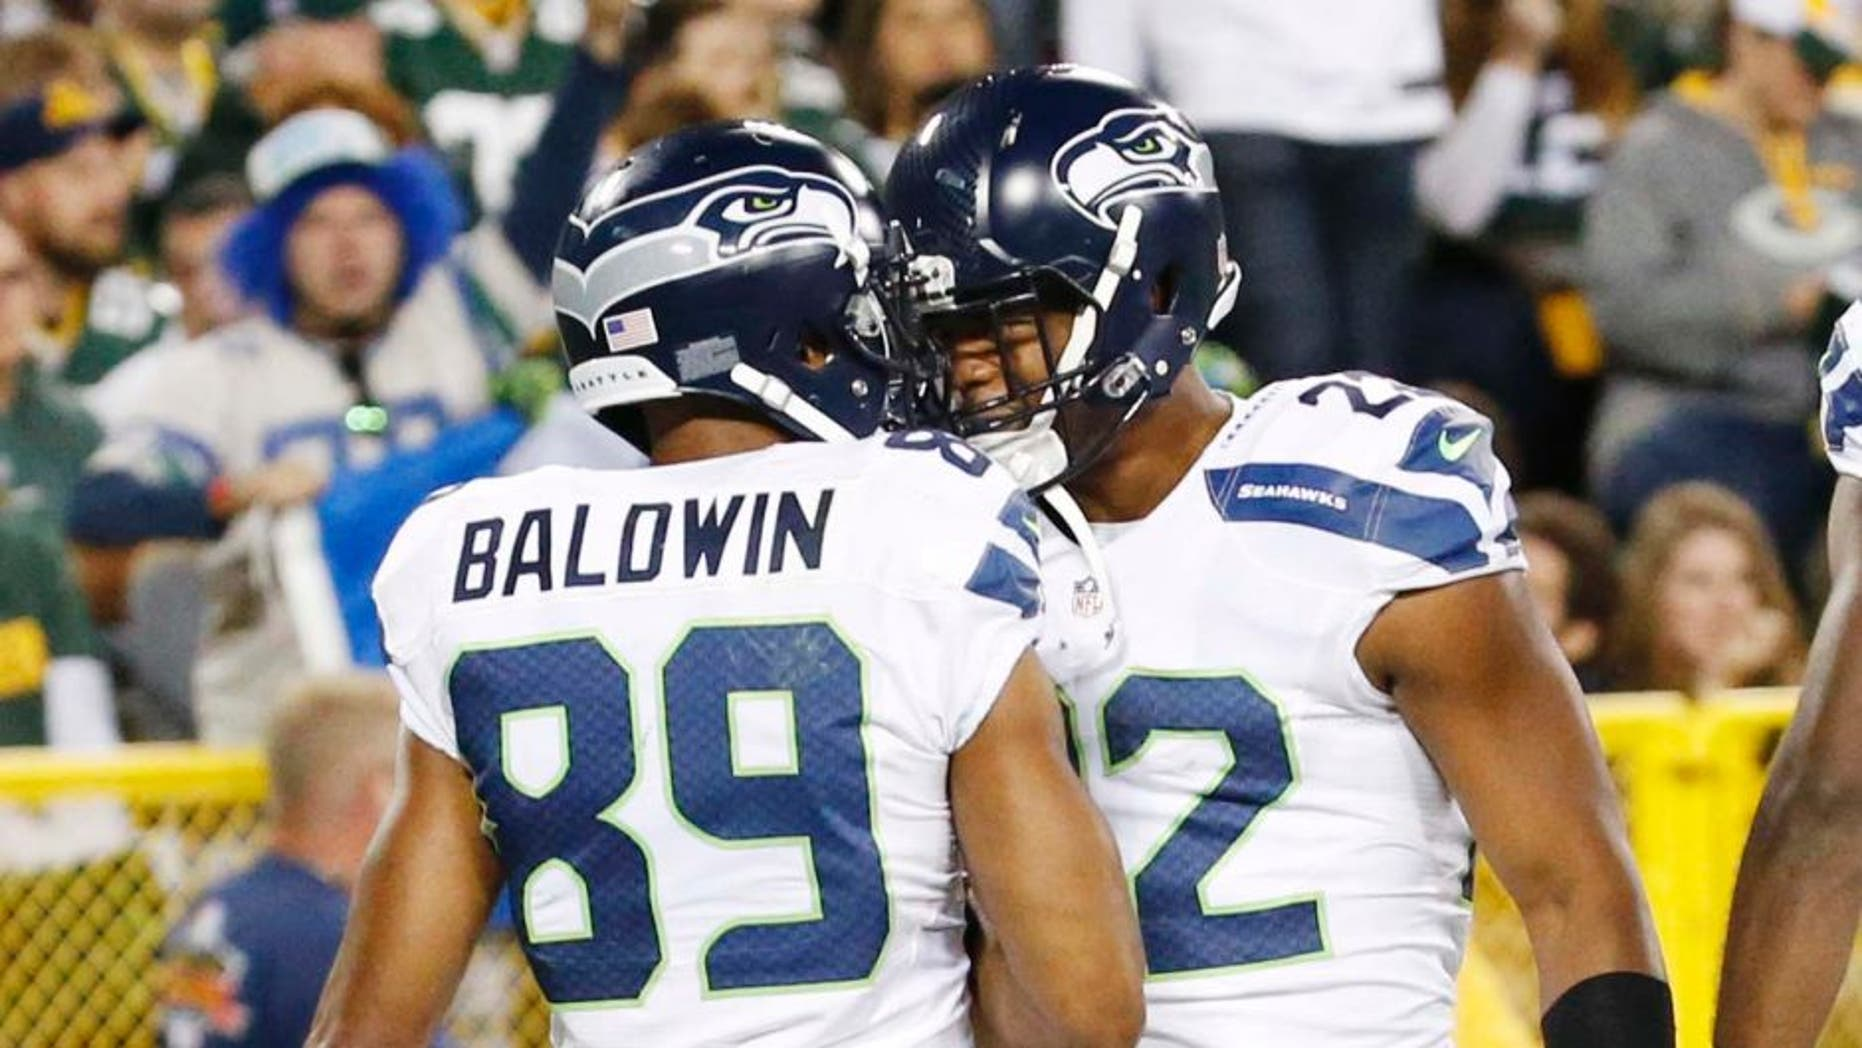 The Seattle Seahawks' Doug Baldwin celebrates his touchdown catch with Fred Jackson during the second half of an NFL football game against the Green Bay Packers on Sunday, Sept. 20, 2015, in Green Bay, Wis.